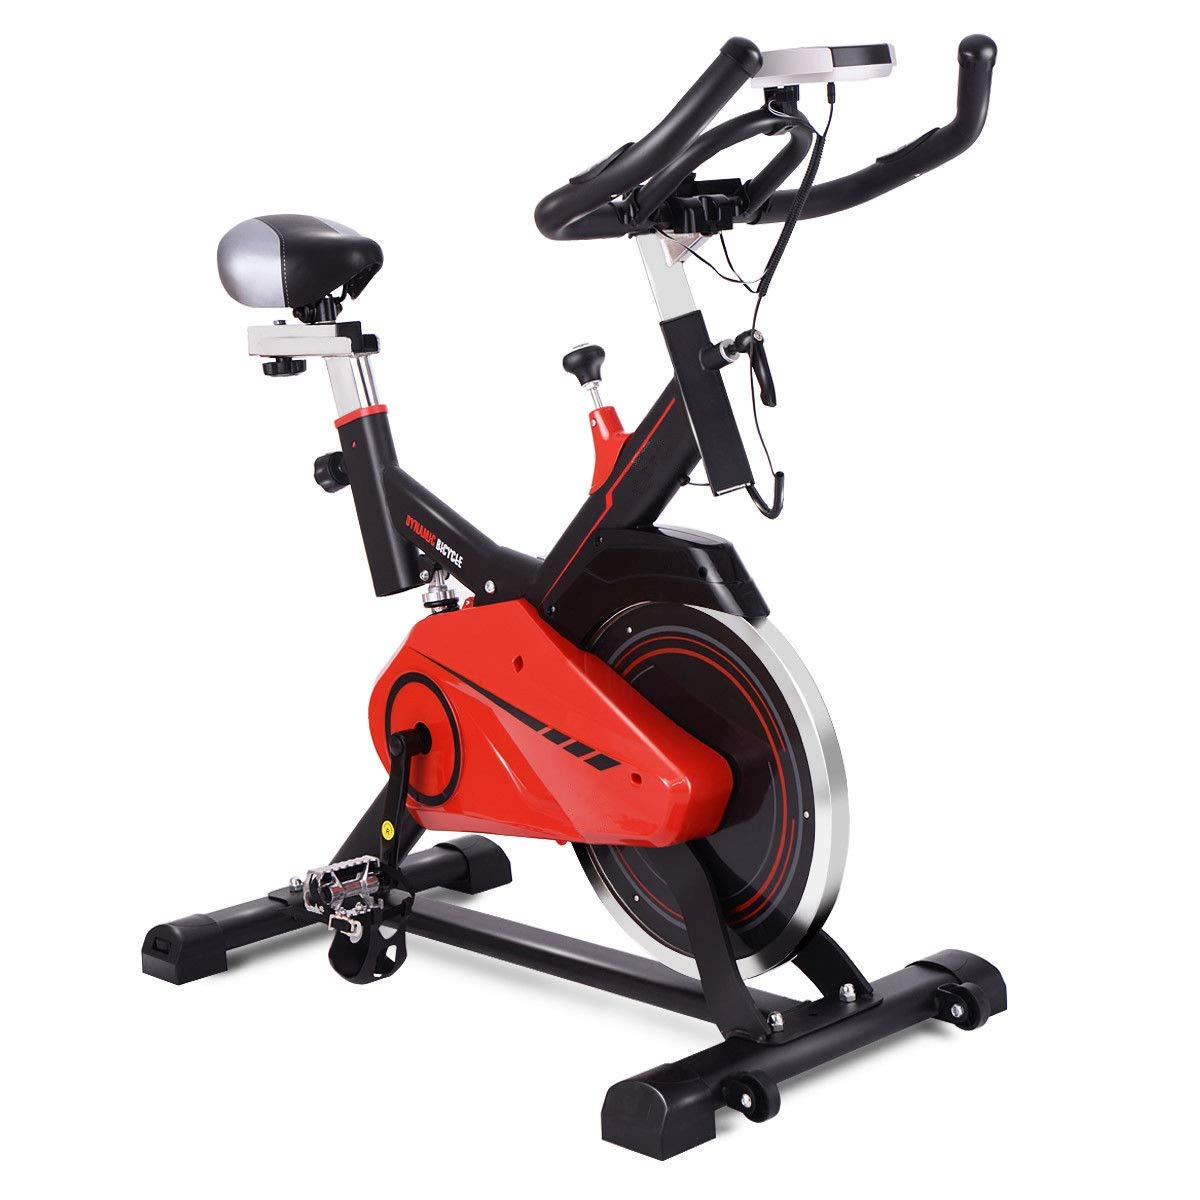 f7b1e6b45df Get Quotations · oldzon 2 in 1 Elliptical Fan Bike Dual Cross Trainer  Machine Exercise Workout Home Gym with